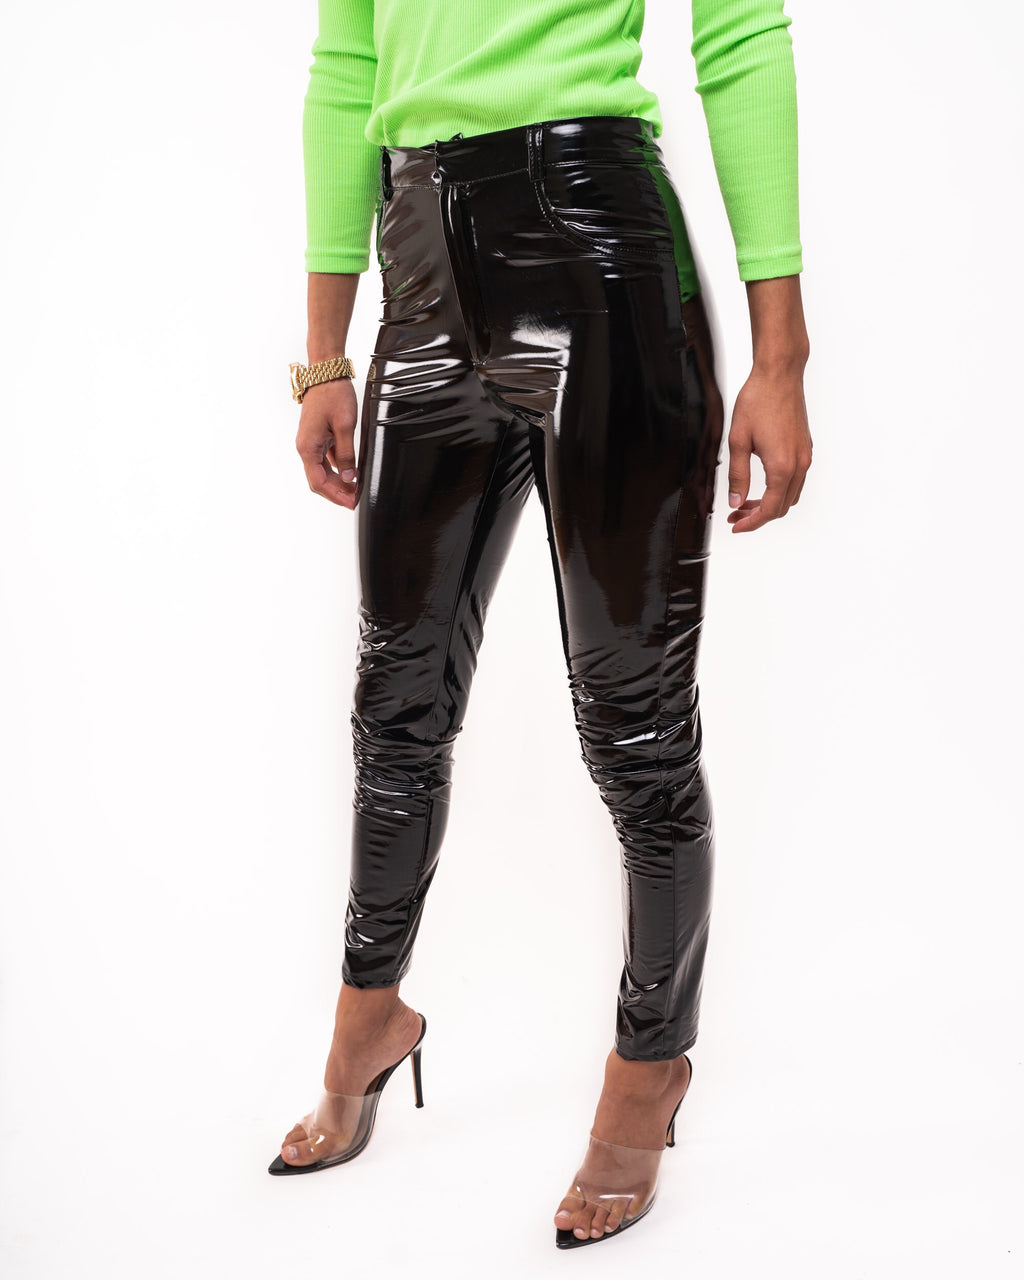 Blackout Latex Pants